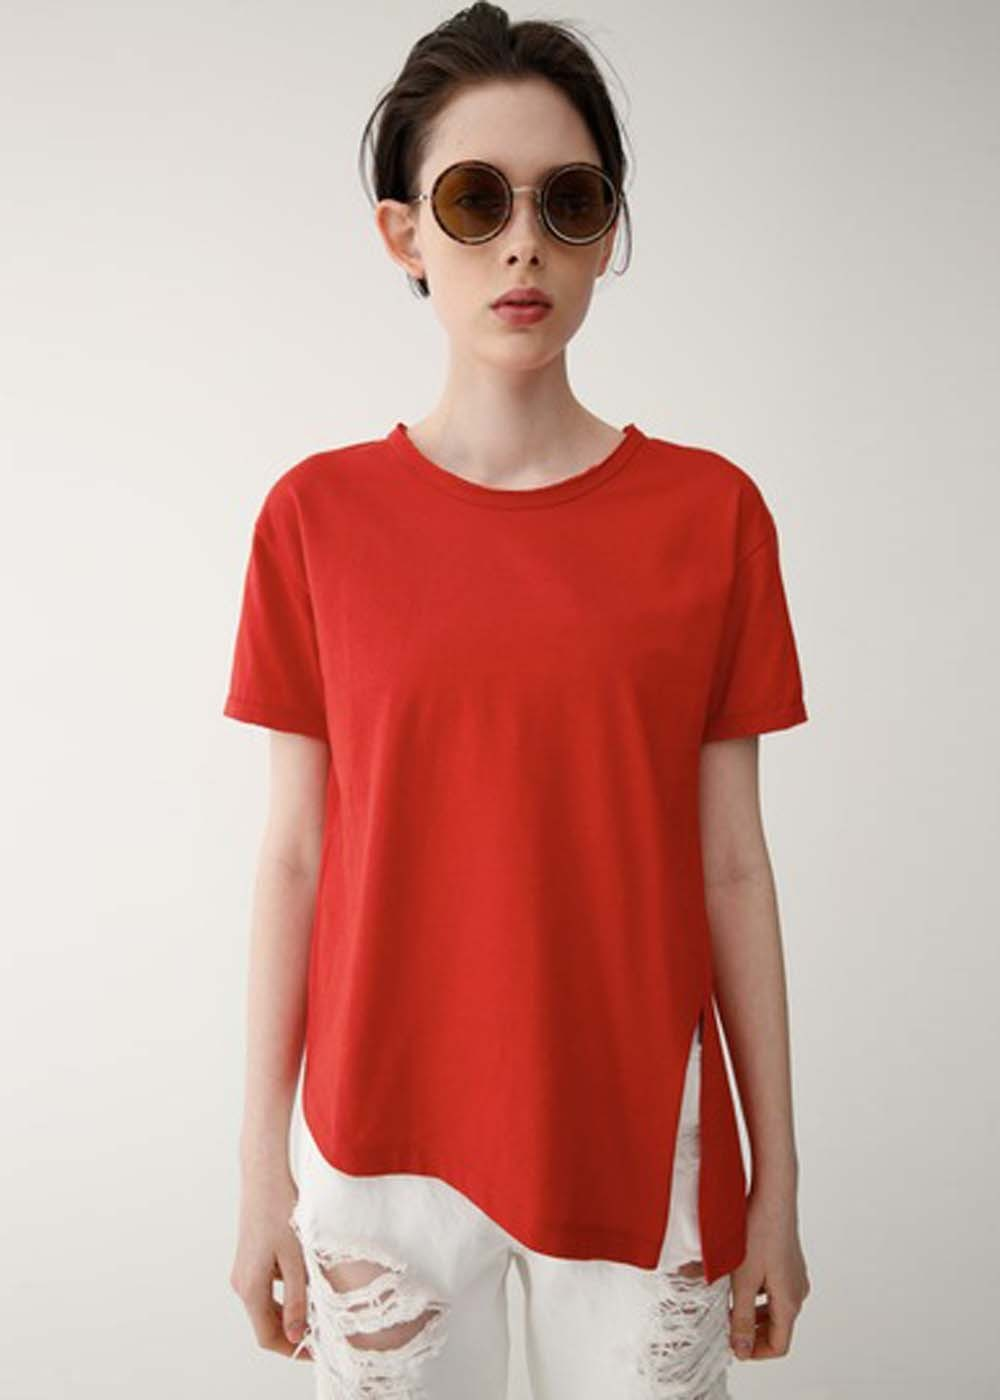 【最大70%OFF】ASYMMETRY SLIT TEE|L/RED|Tシャツ|MOUSSY